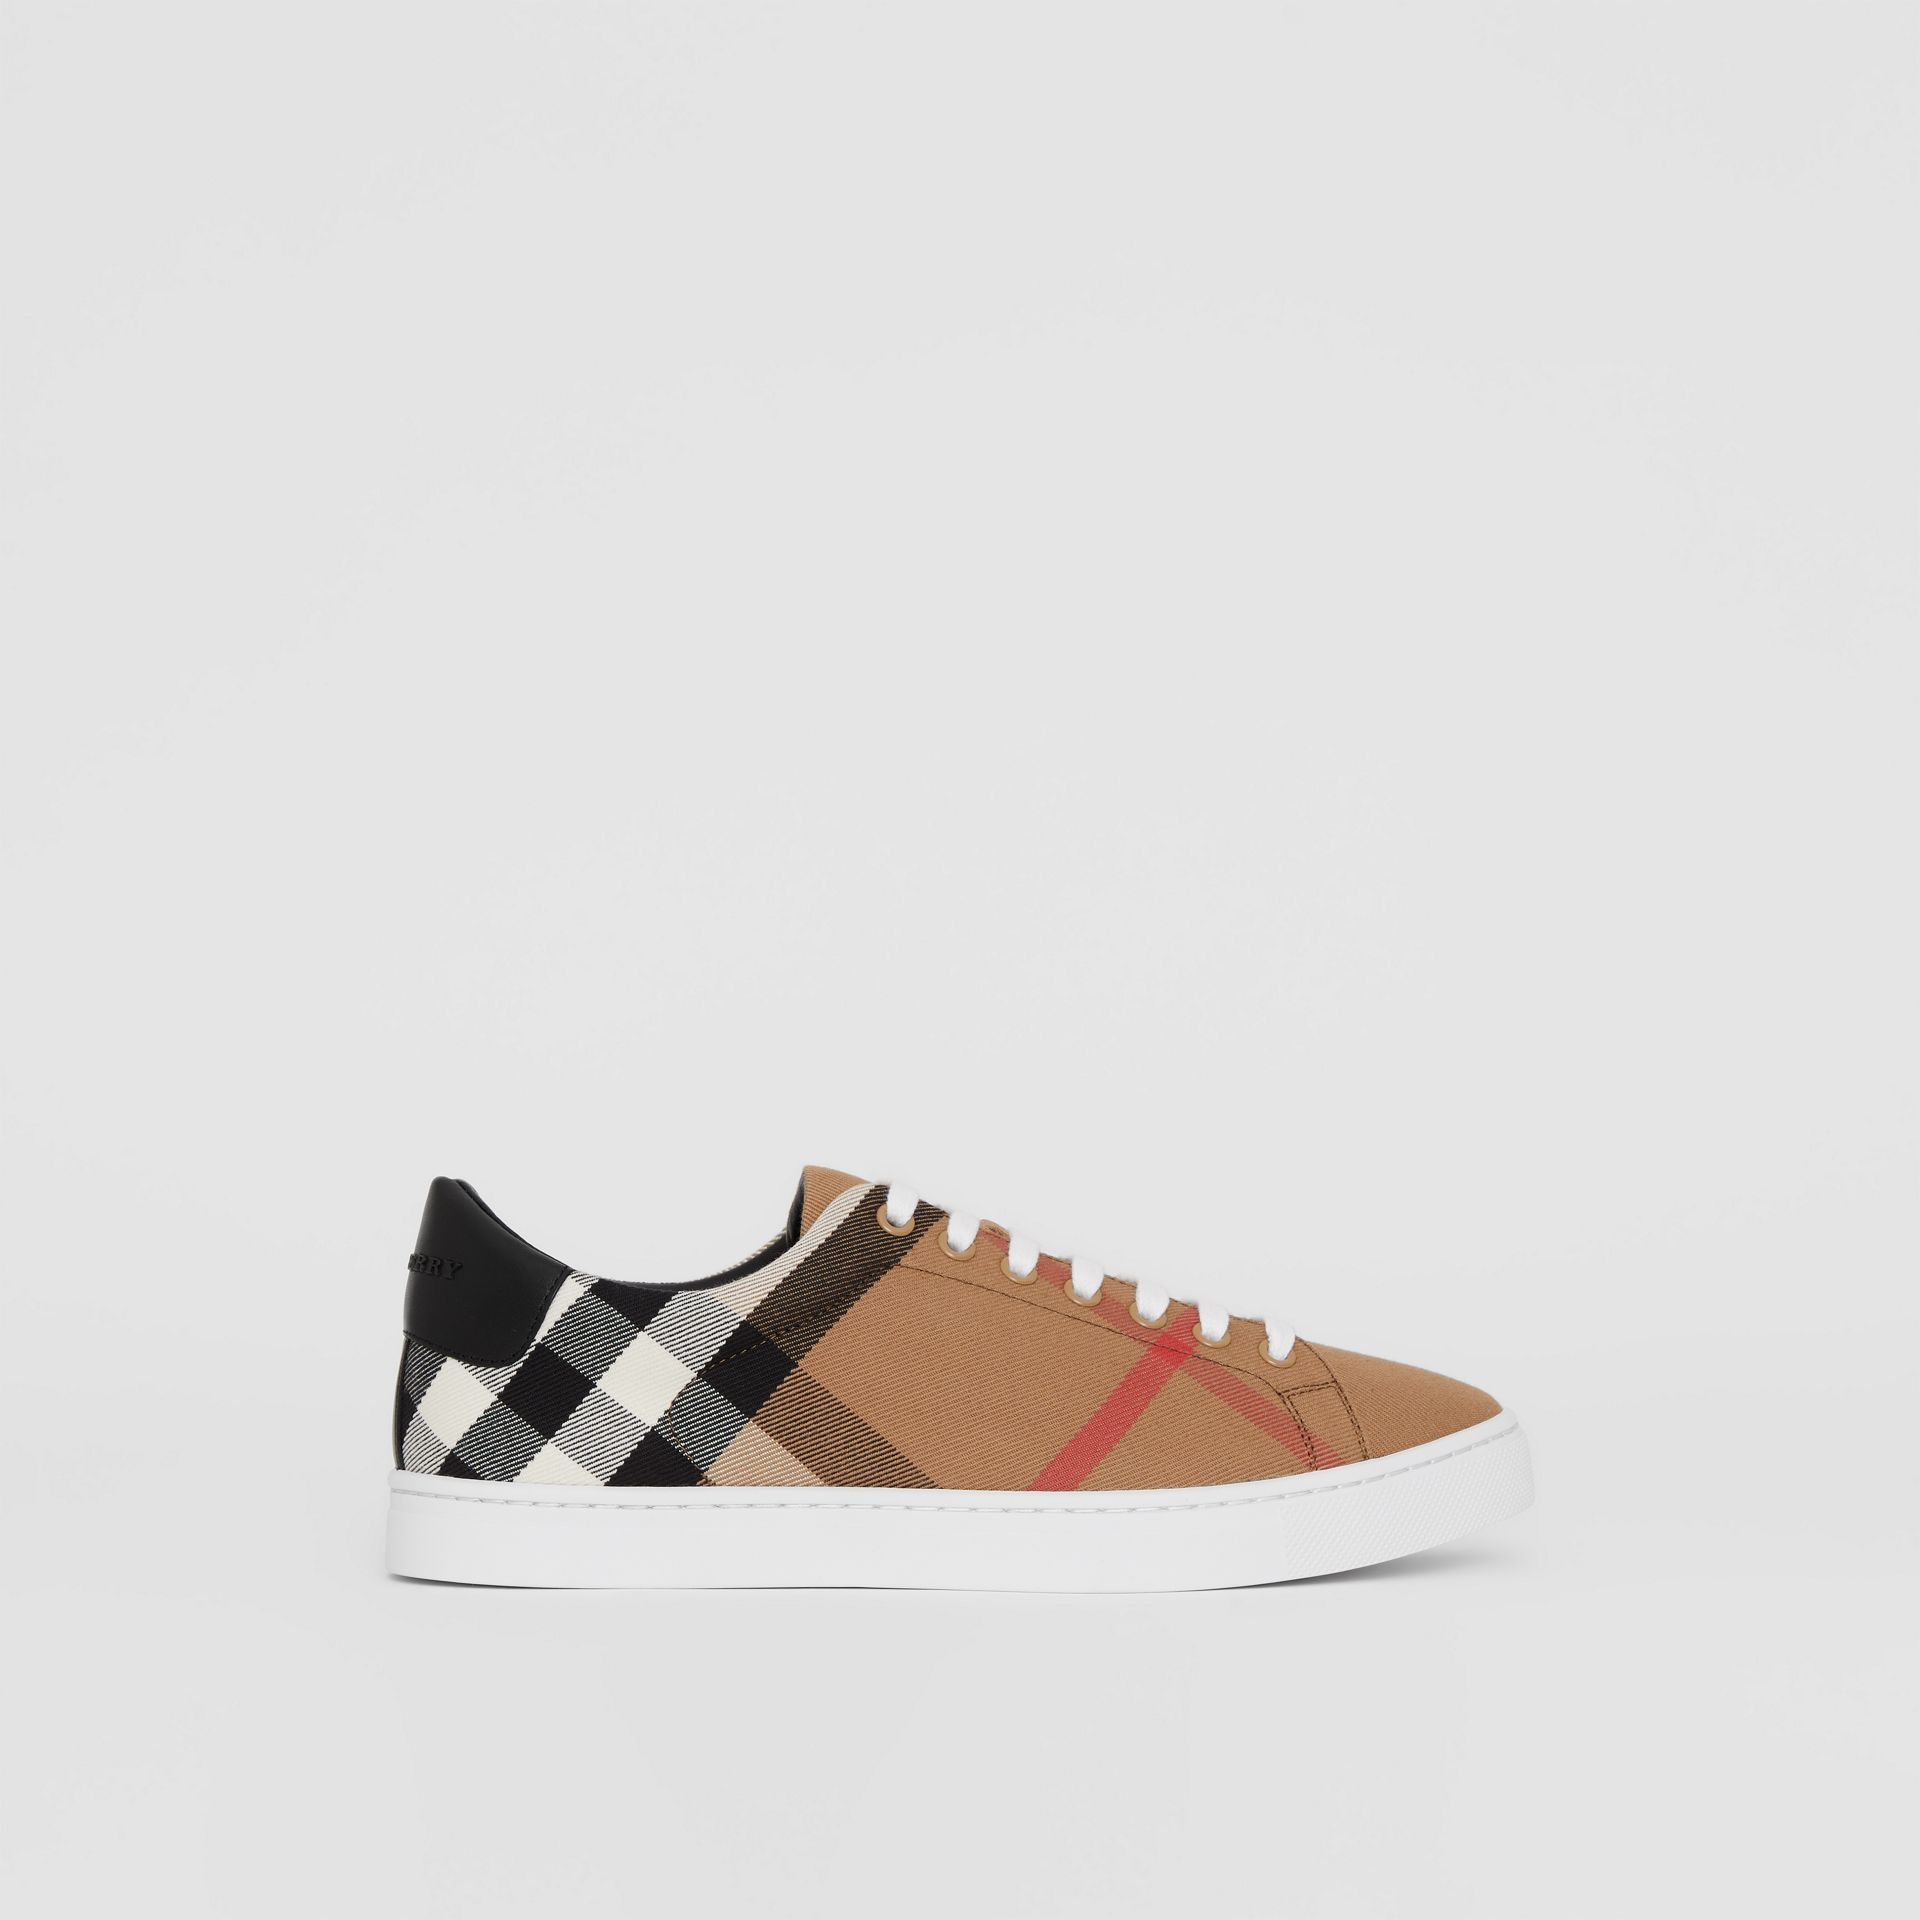 House Check and Leather Sneakers in Check/black - Men | Burberry United Kingdom - gallery image 4